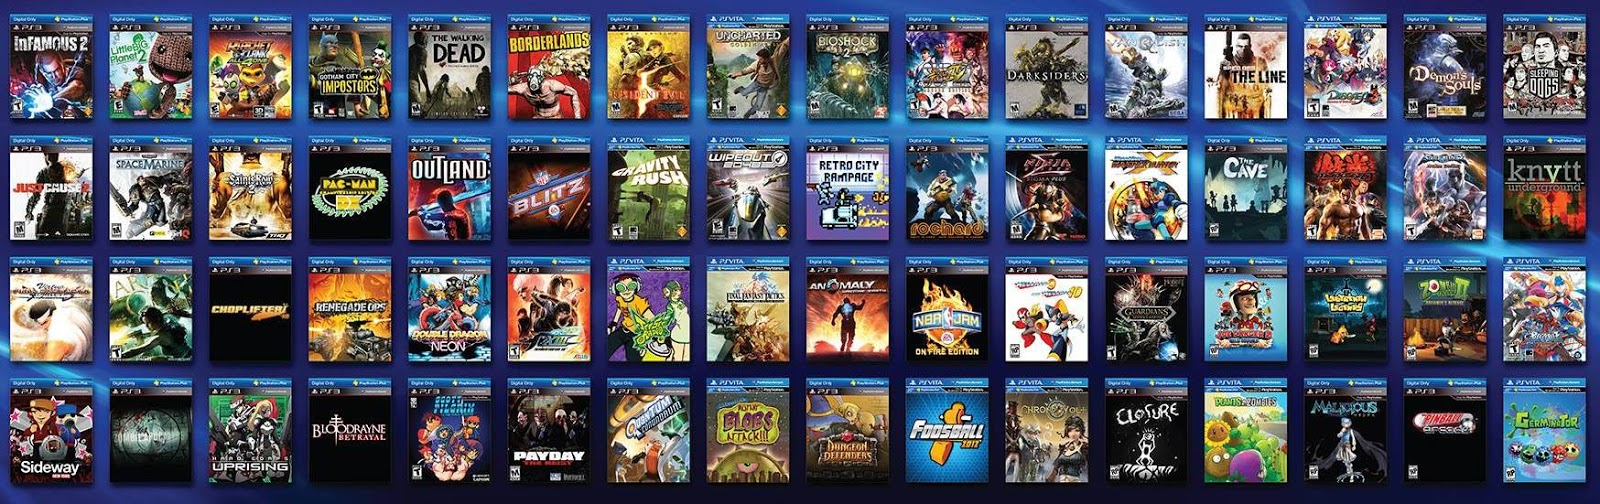 vita - Download All Sony PSVita Games